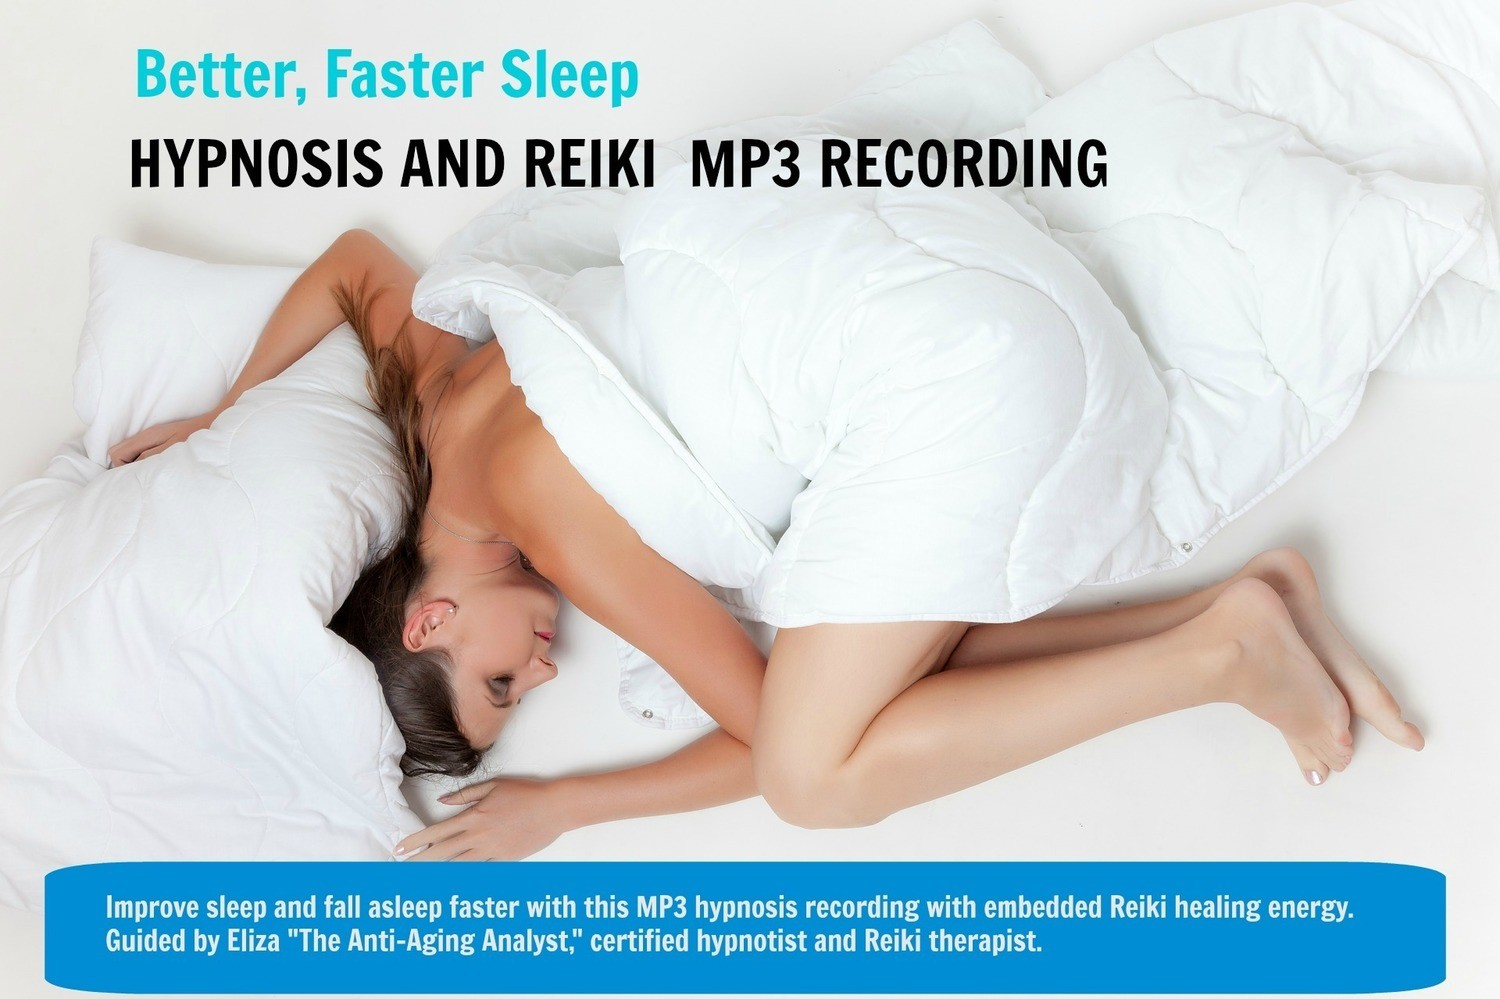 Hypnosis MP3 For Faster, Better Sleep (Digital Product)